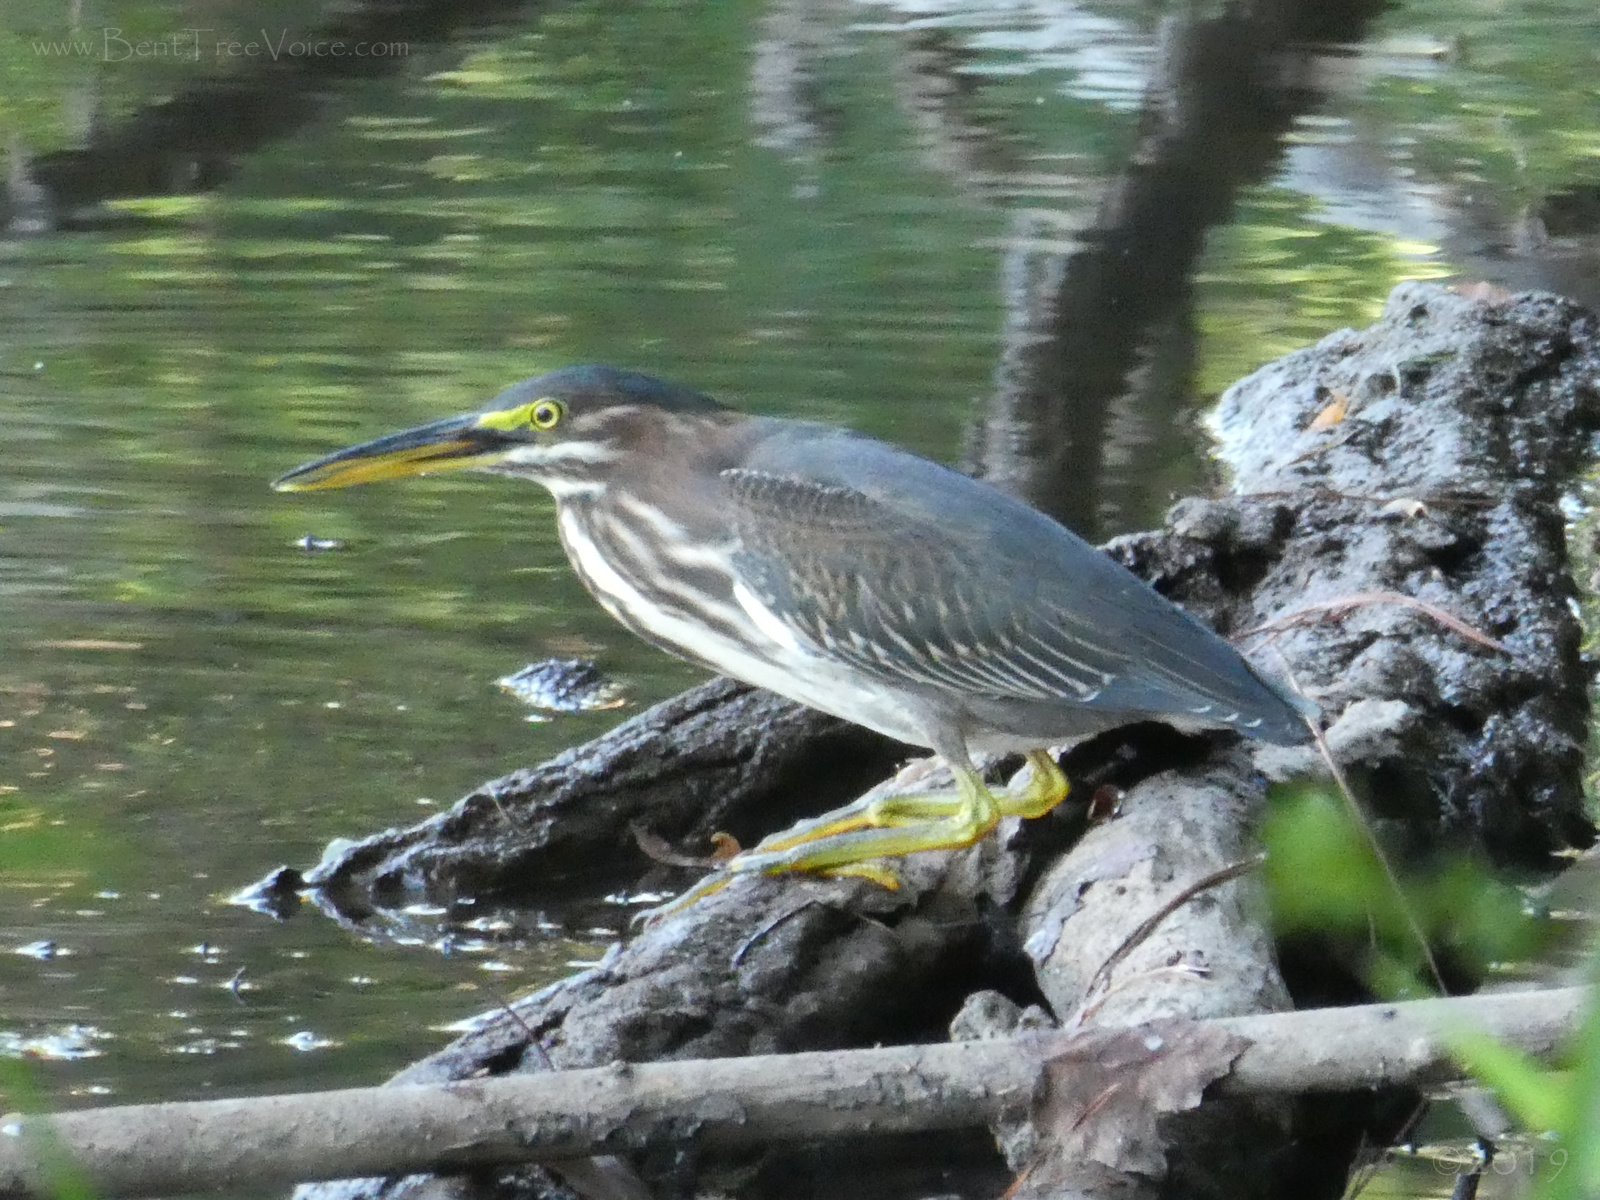 August 18, 2019 - closeup of the green heron